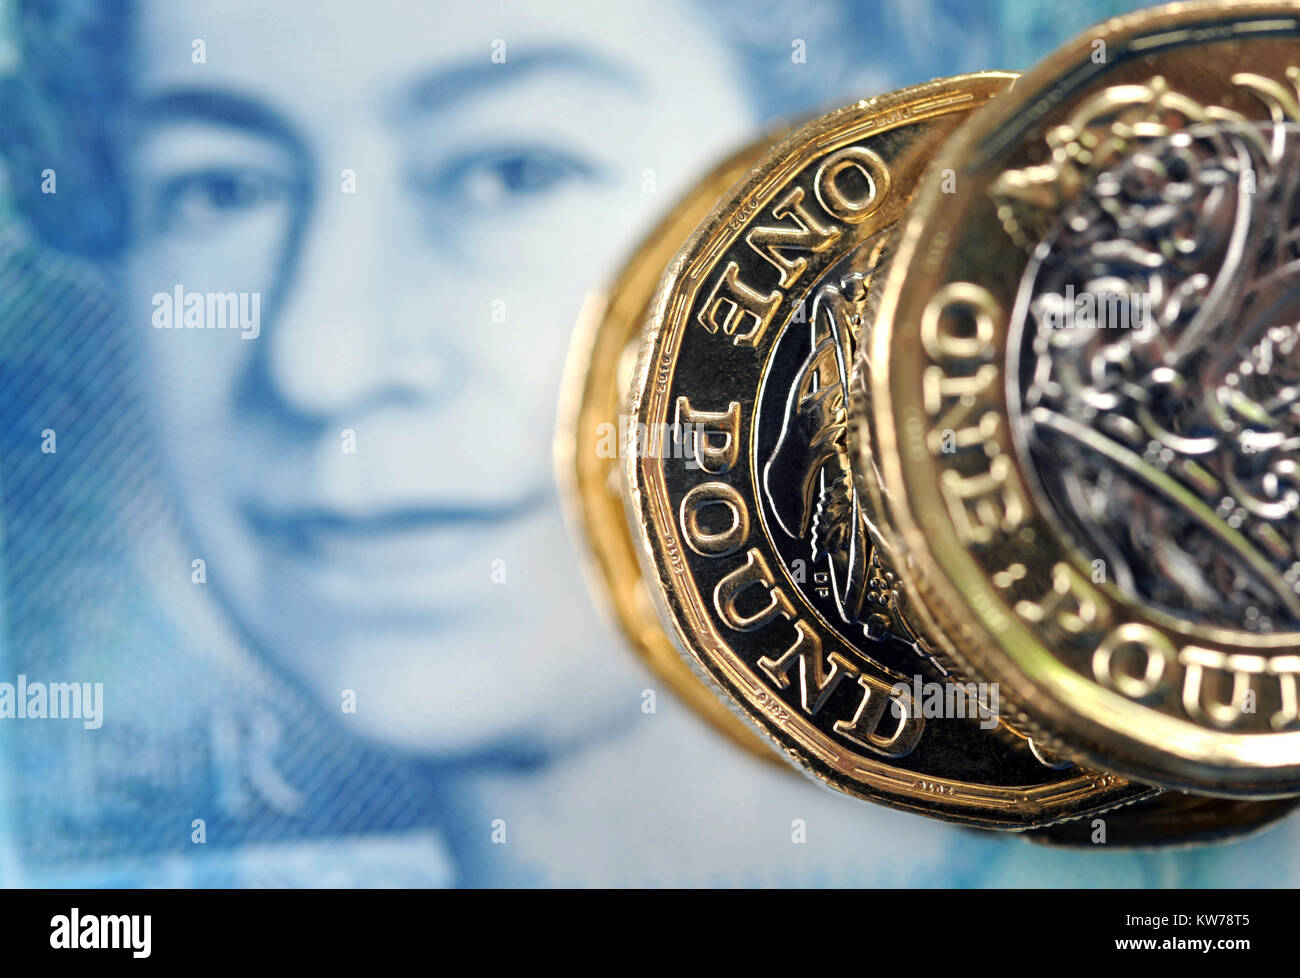 NEW BRITISH ONE POUND COINS WITH NEW £5 NOTE RE FINANCE BREXIT INCOMES WAGES MORTGAGES ETC UK - Stock Image